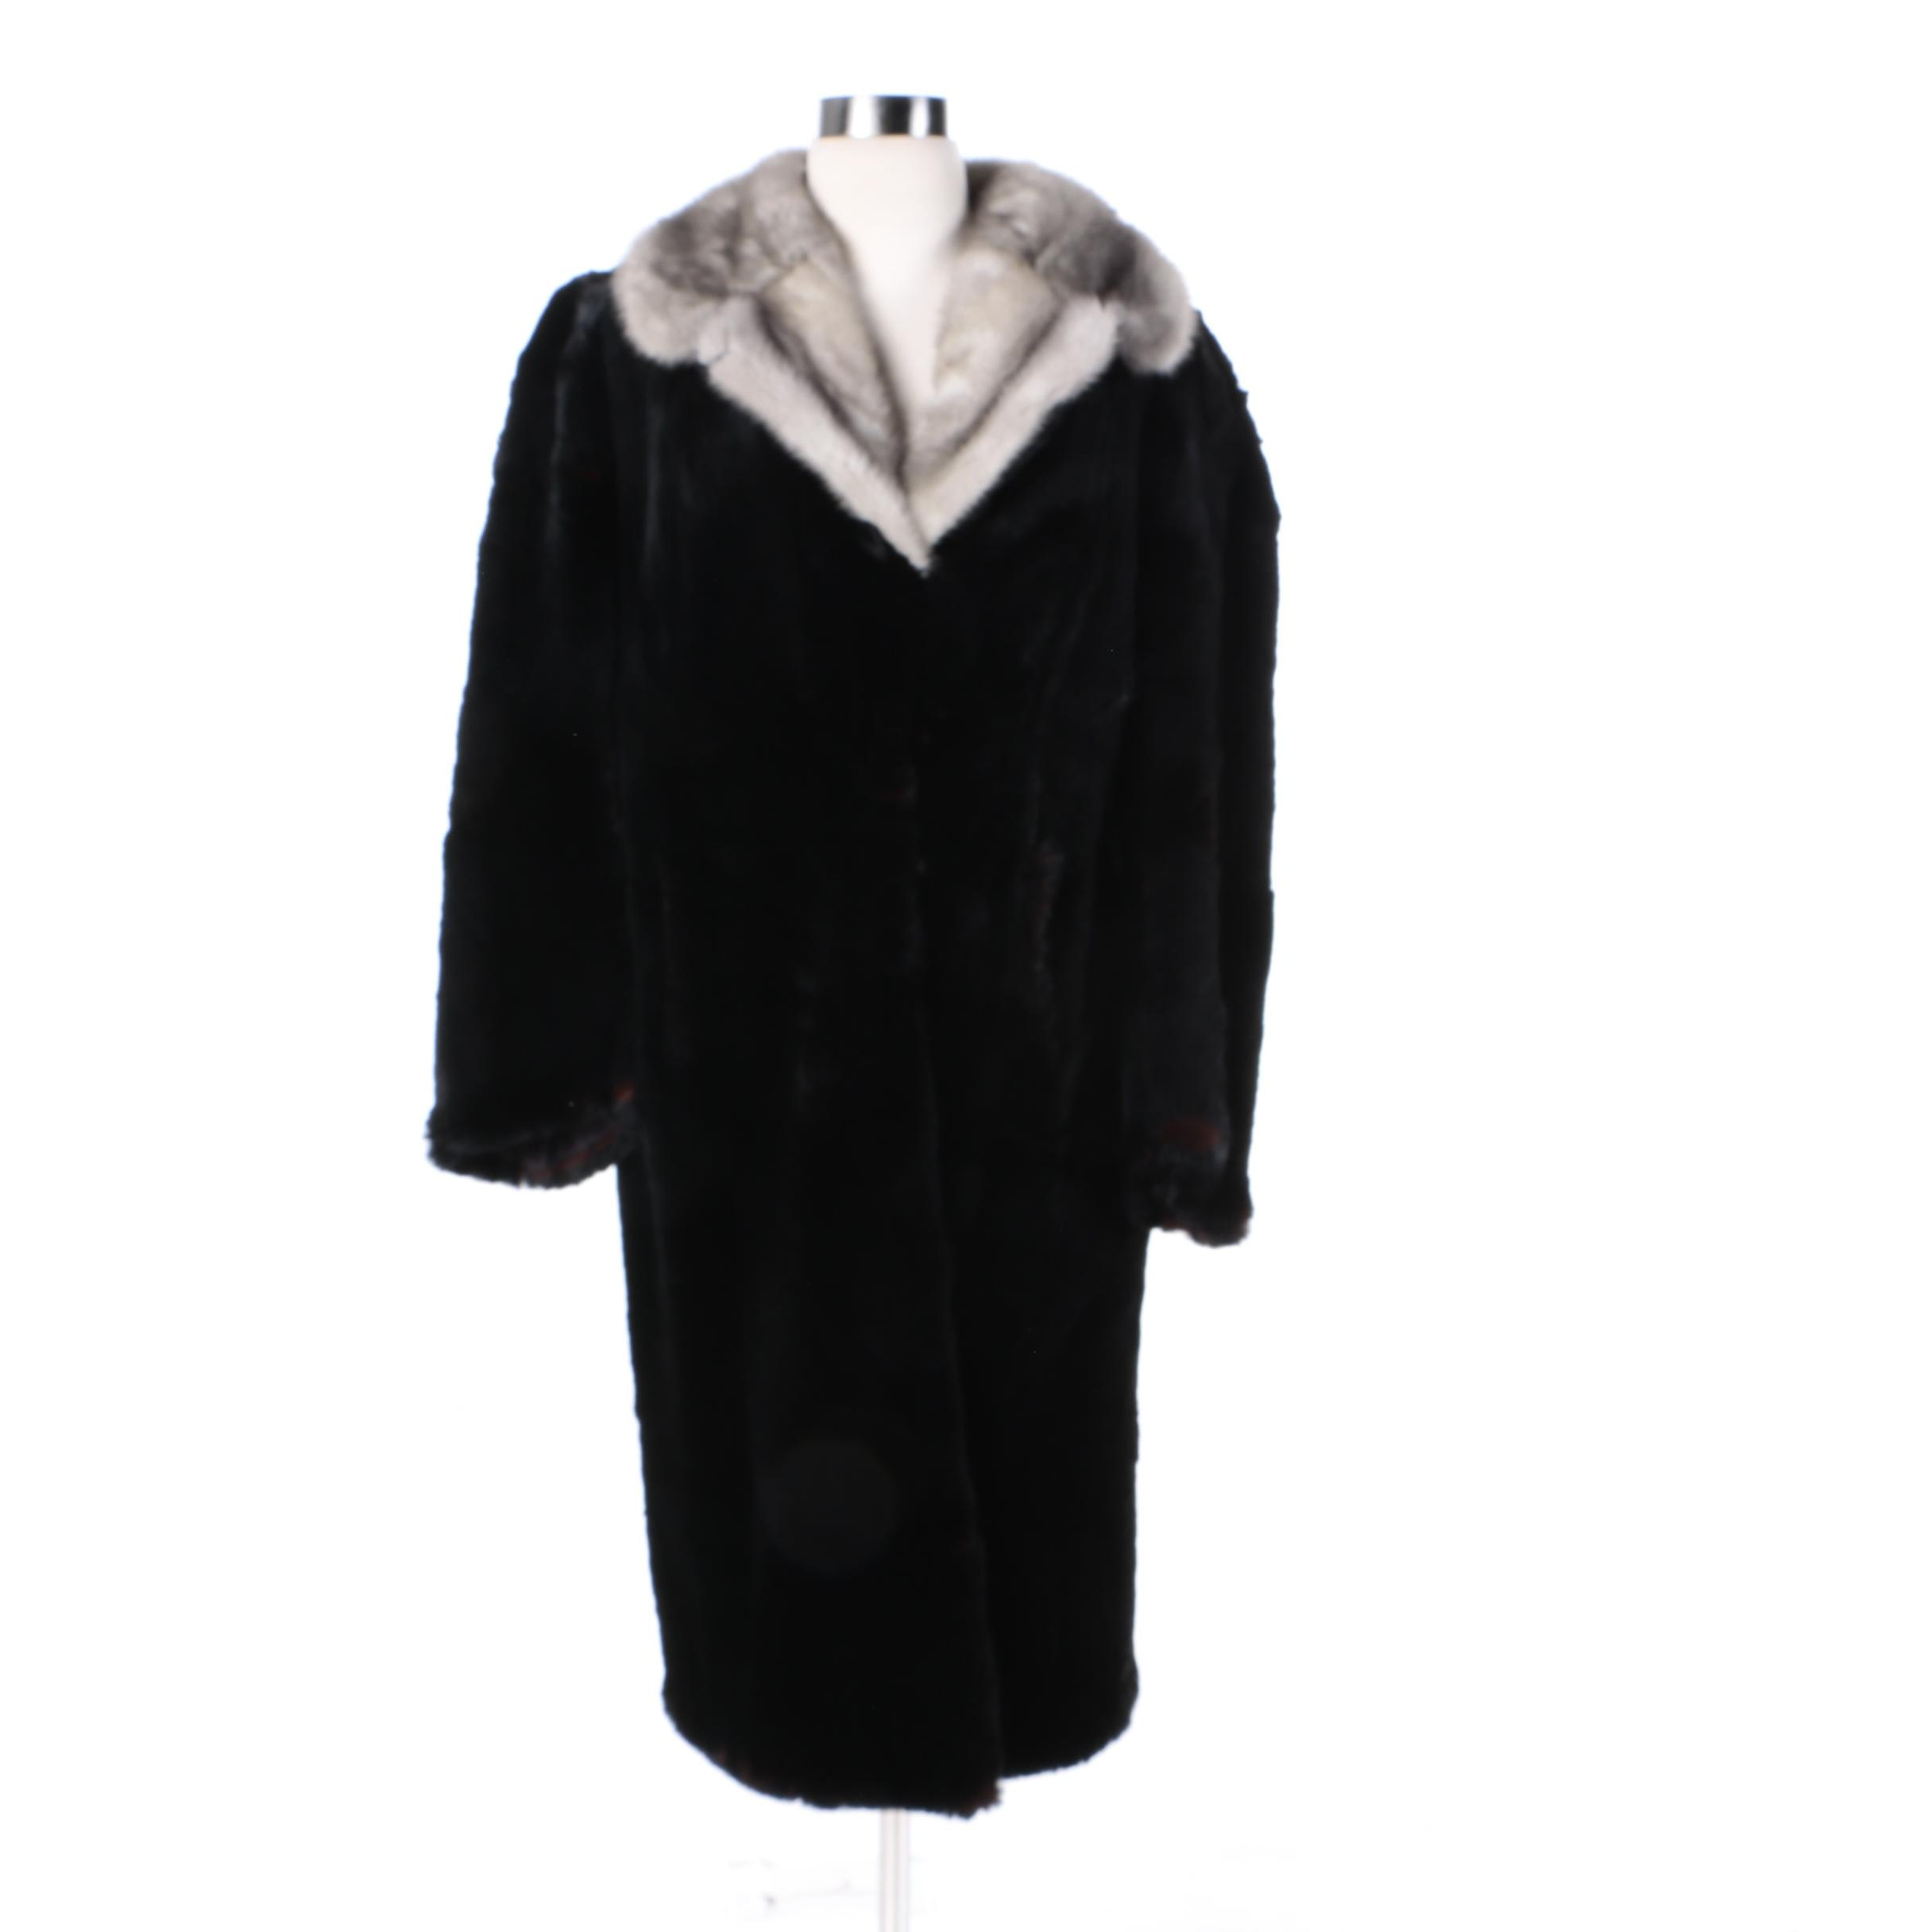 Women's Dyed Black Sheared Beaver Fur Coat with Grey Mink Fur Collar